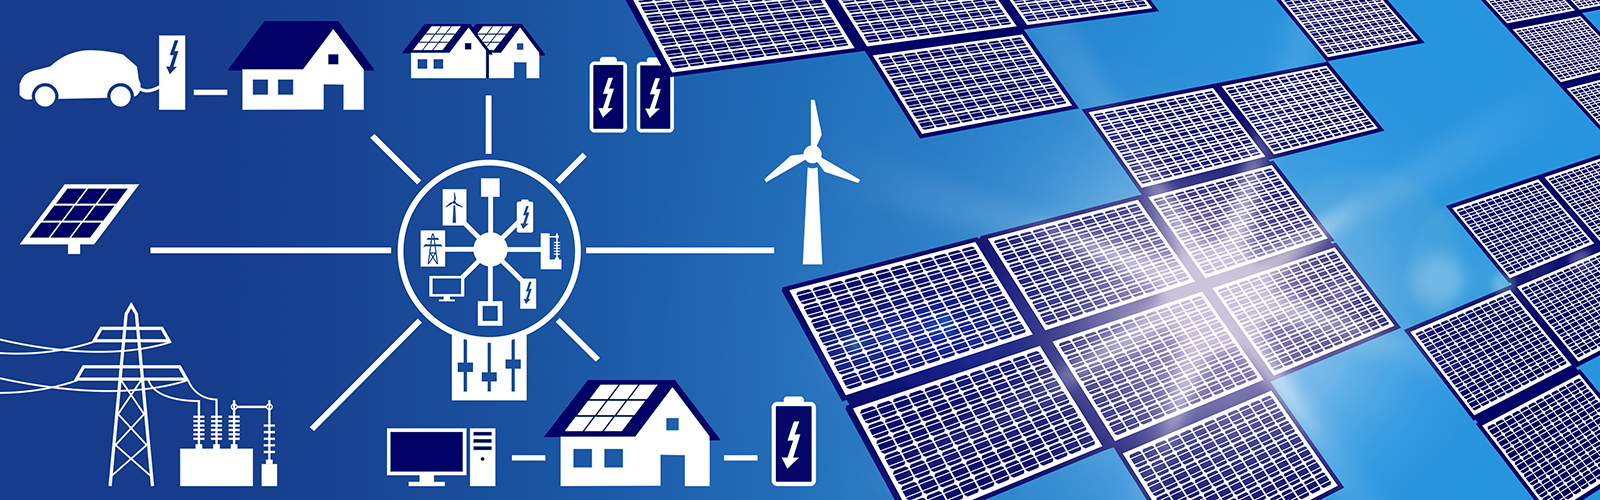 Solar Energy: Integration of Photovoltaic Systems in Microgrids | TU